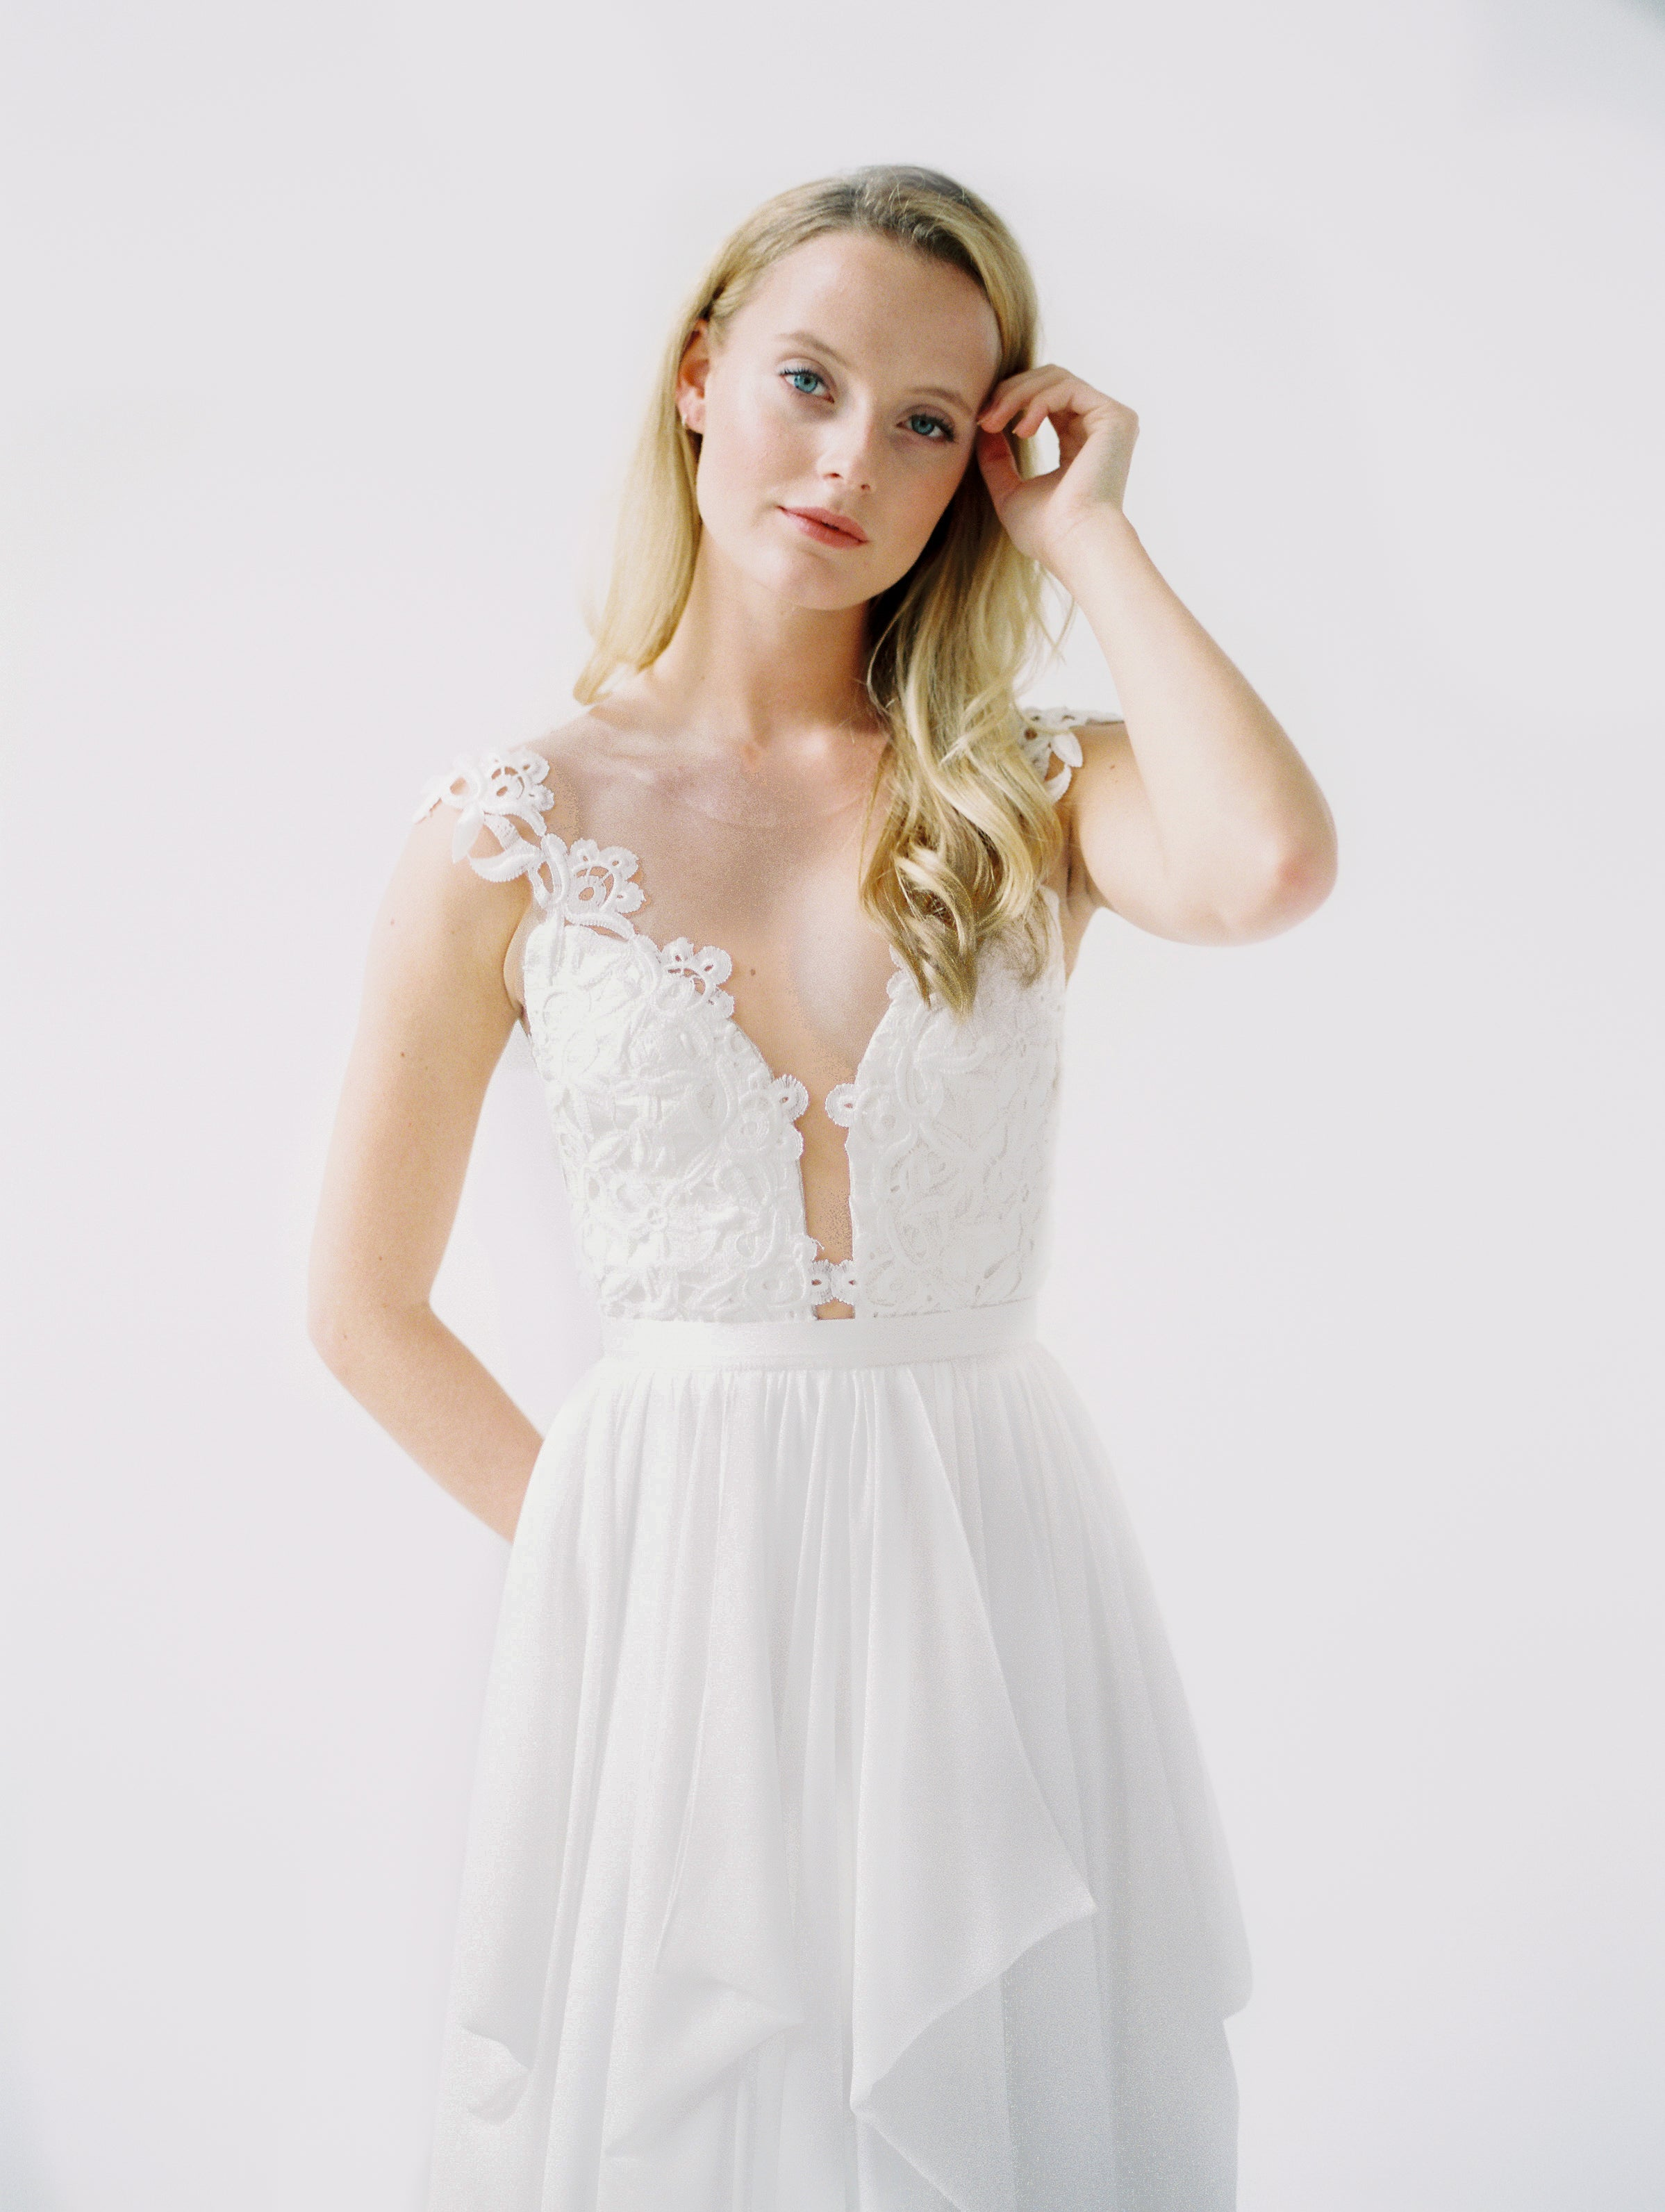 Illusion backless lace dress with a flowy chiffon pickup skirt